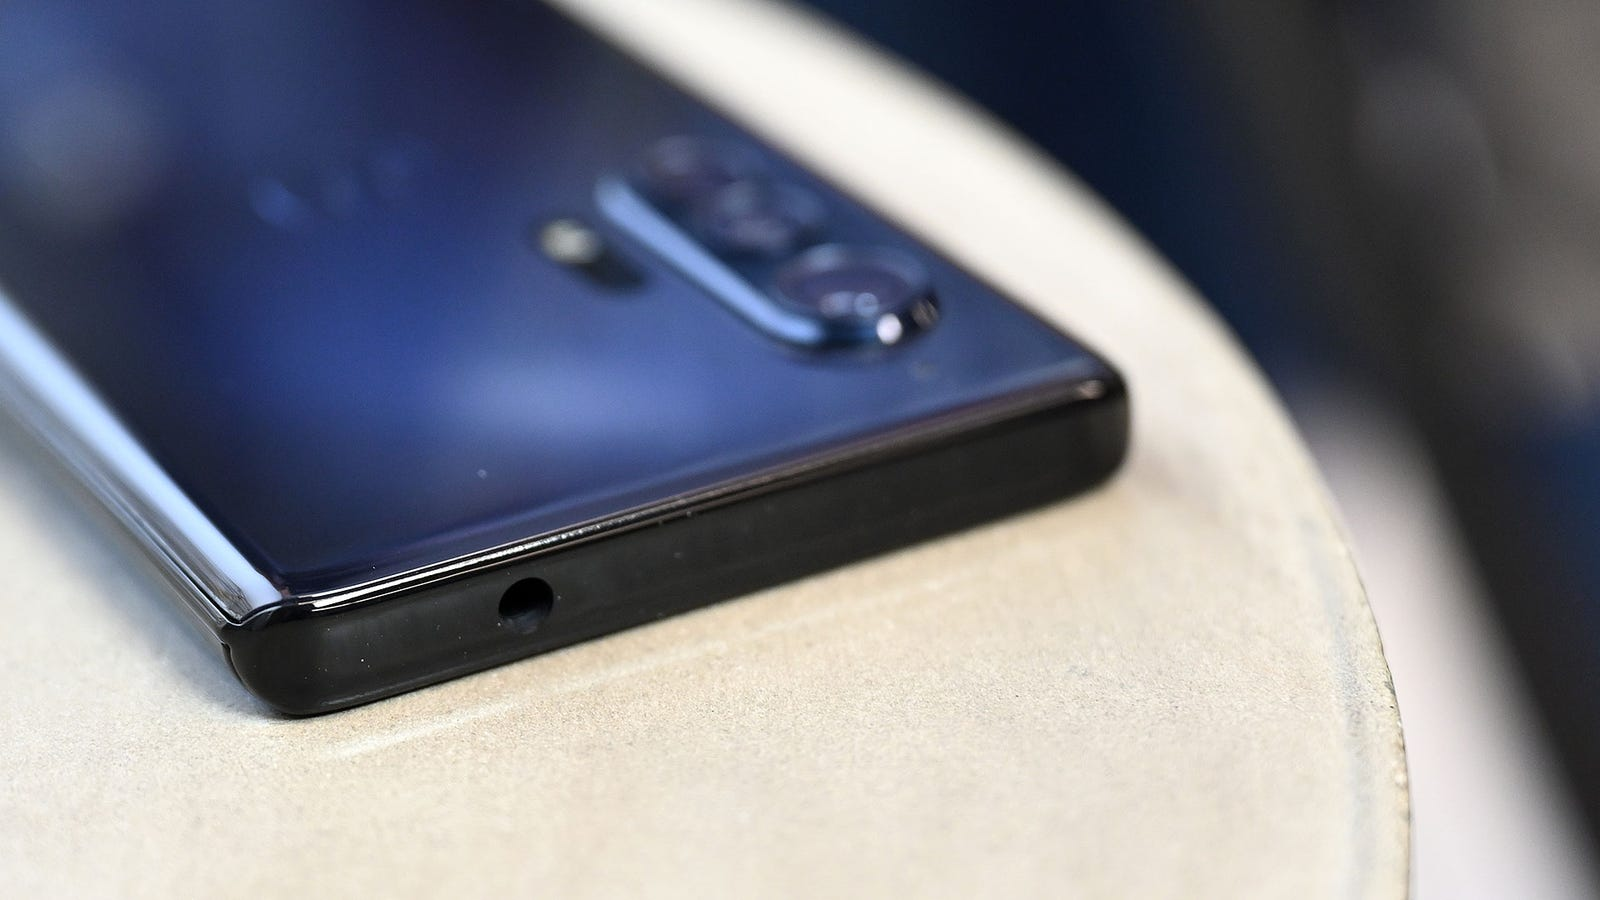 While other smartphone makers continue to ditch the headphone jack, Motorola is keeping the 3.5mm port alive on the Edge and Edge+. Click through for more close-up images.